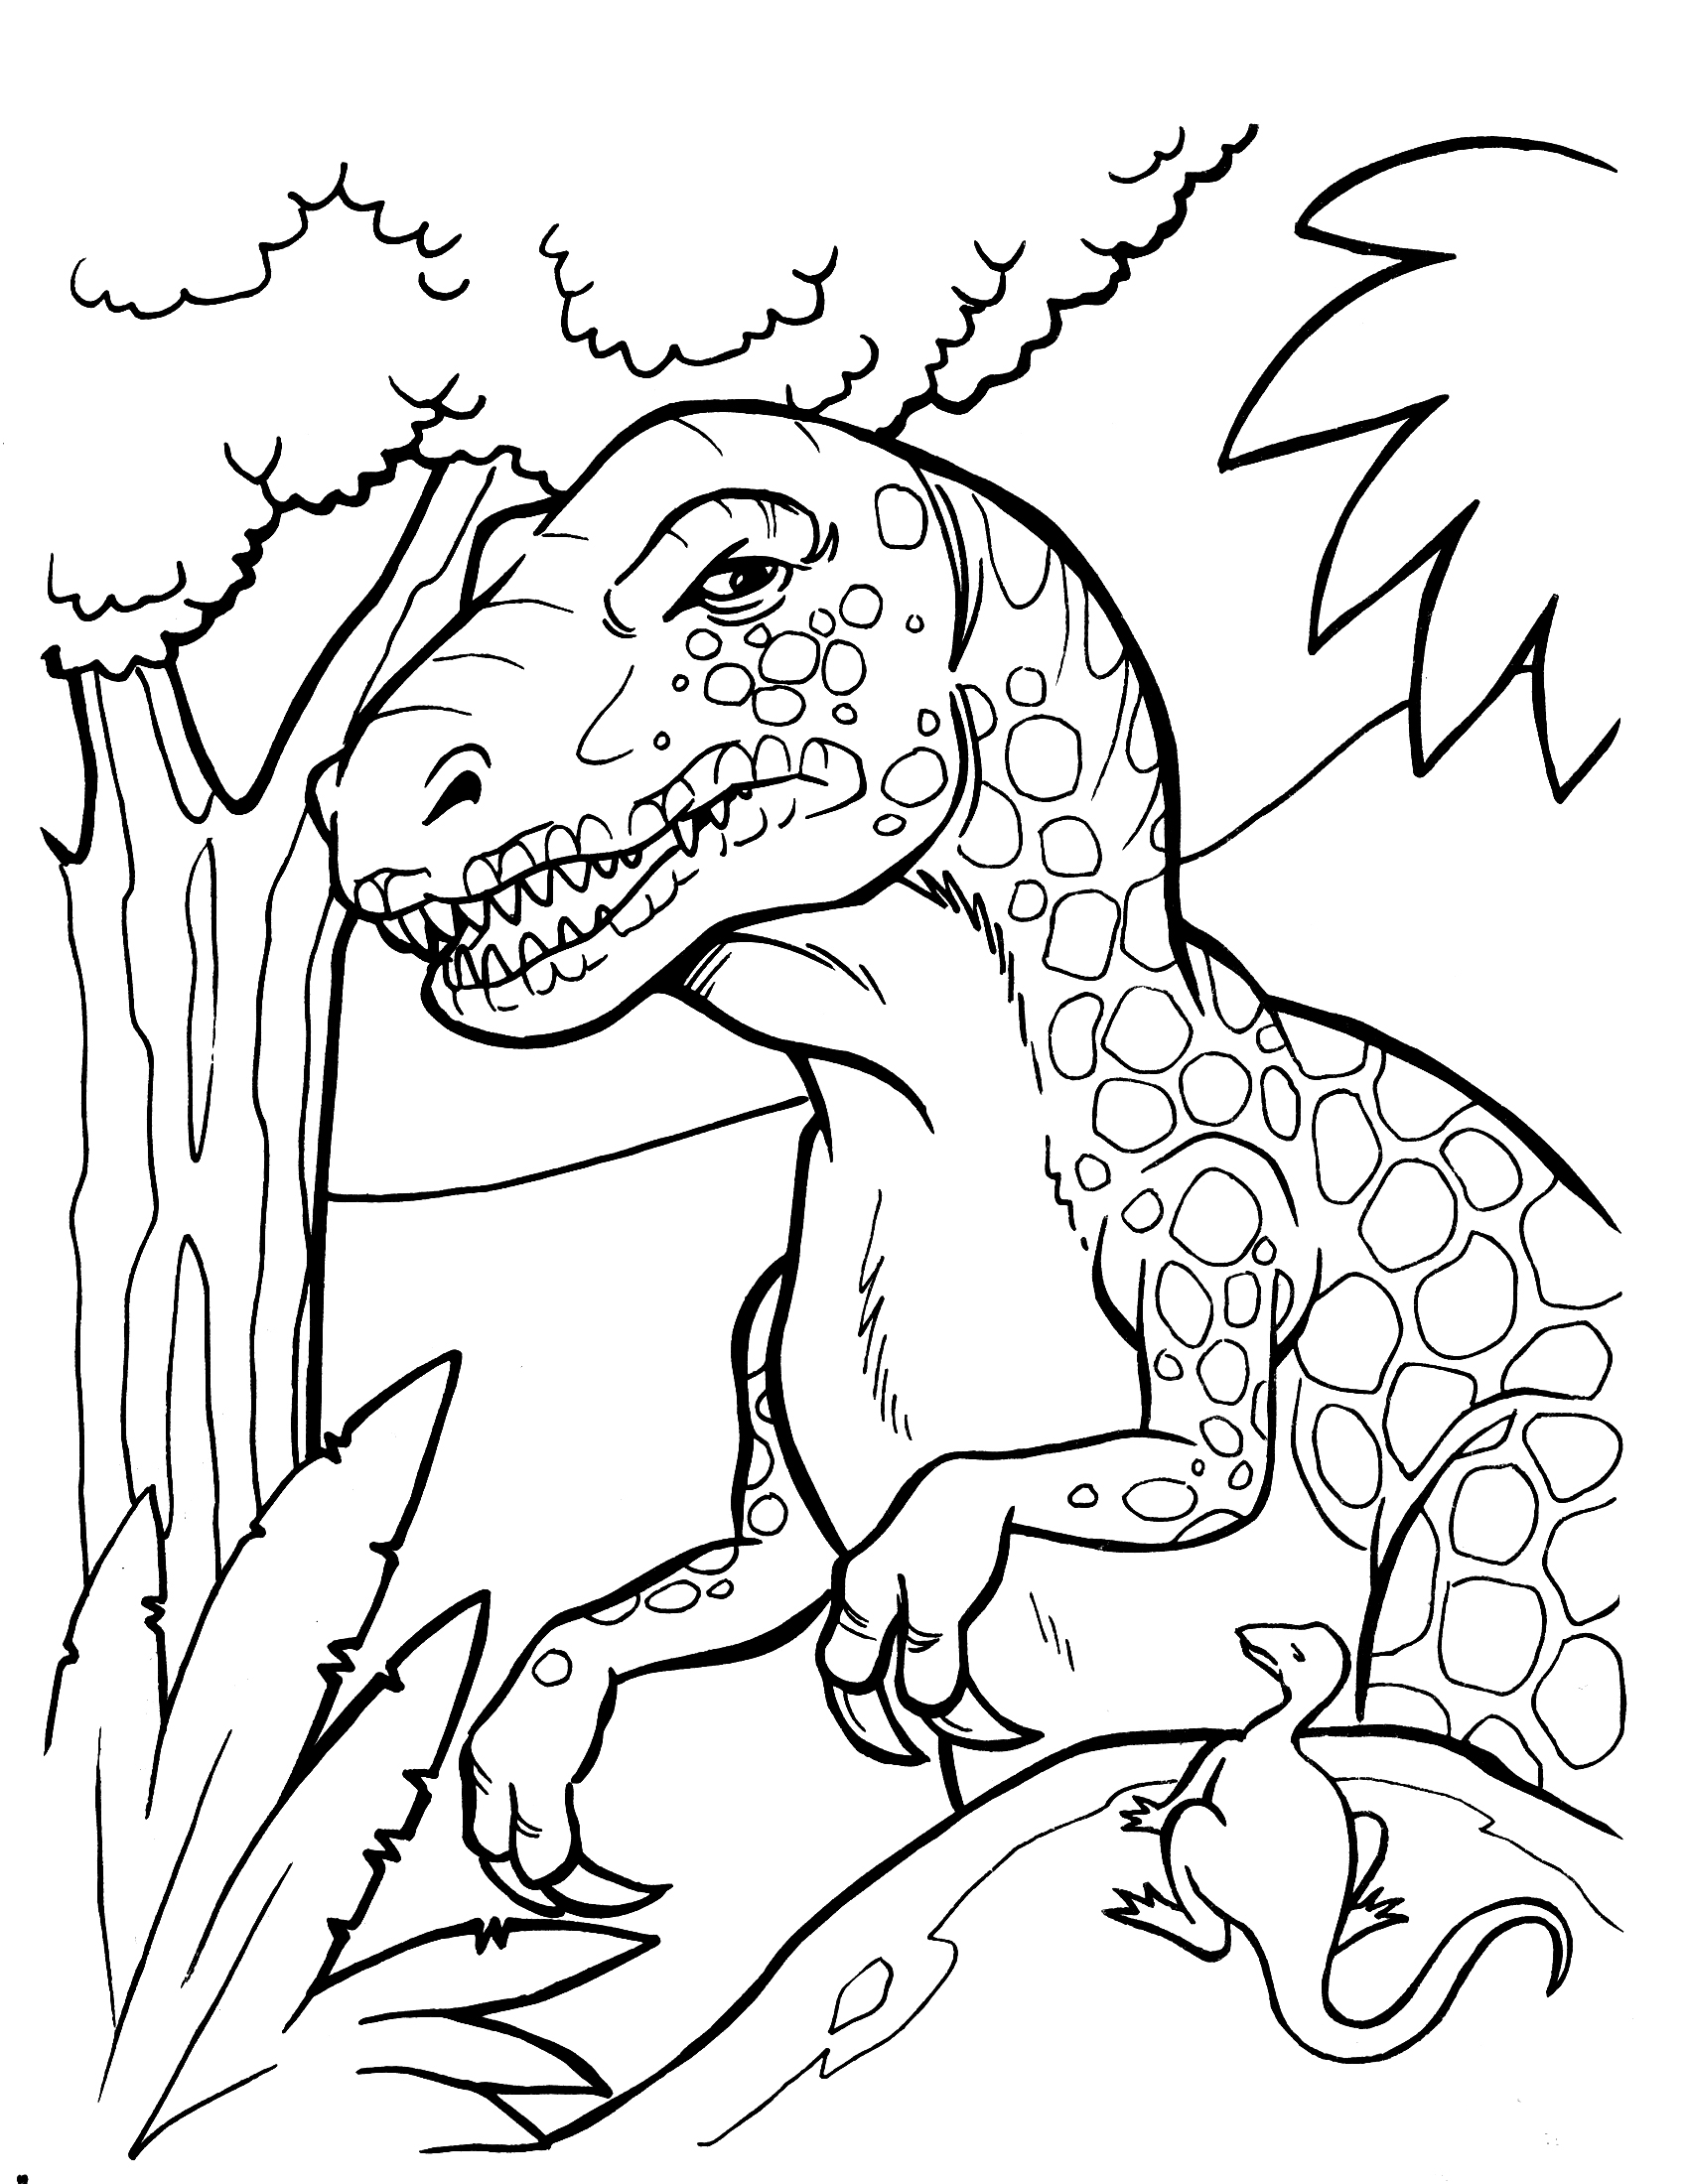 Reward Scary Dinosaur Coloring Pages Free Printable Clip and Color P Gallery Of Dinosaur Clipart Coloring Page Triceratop Pencil and In Color Gallery